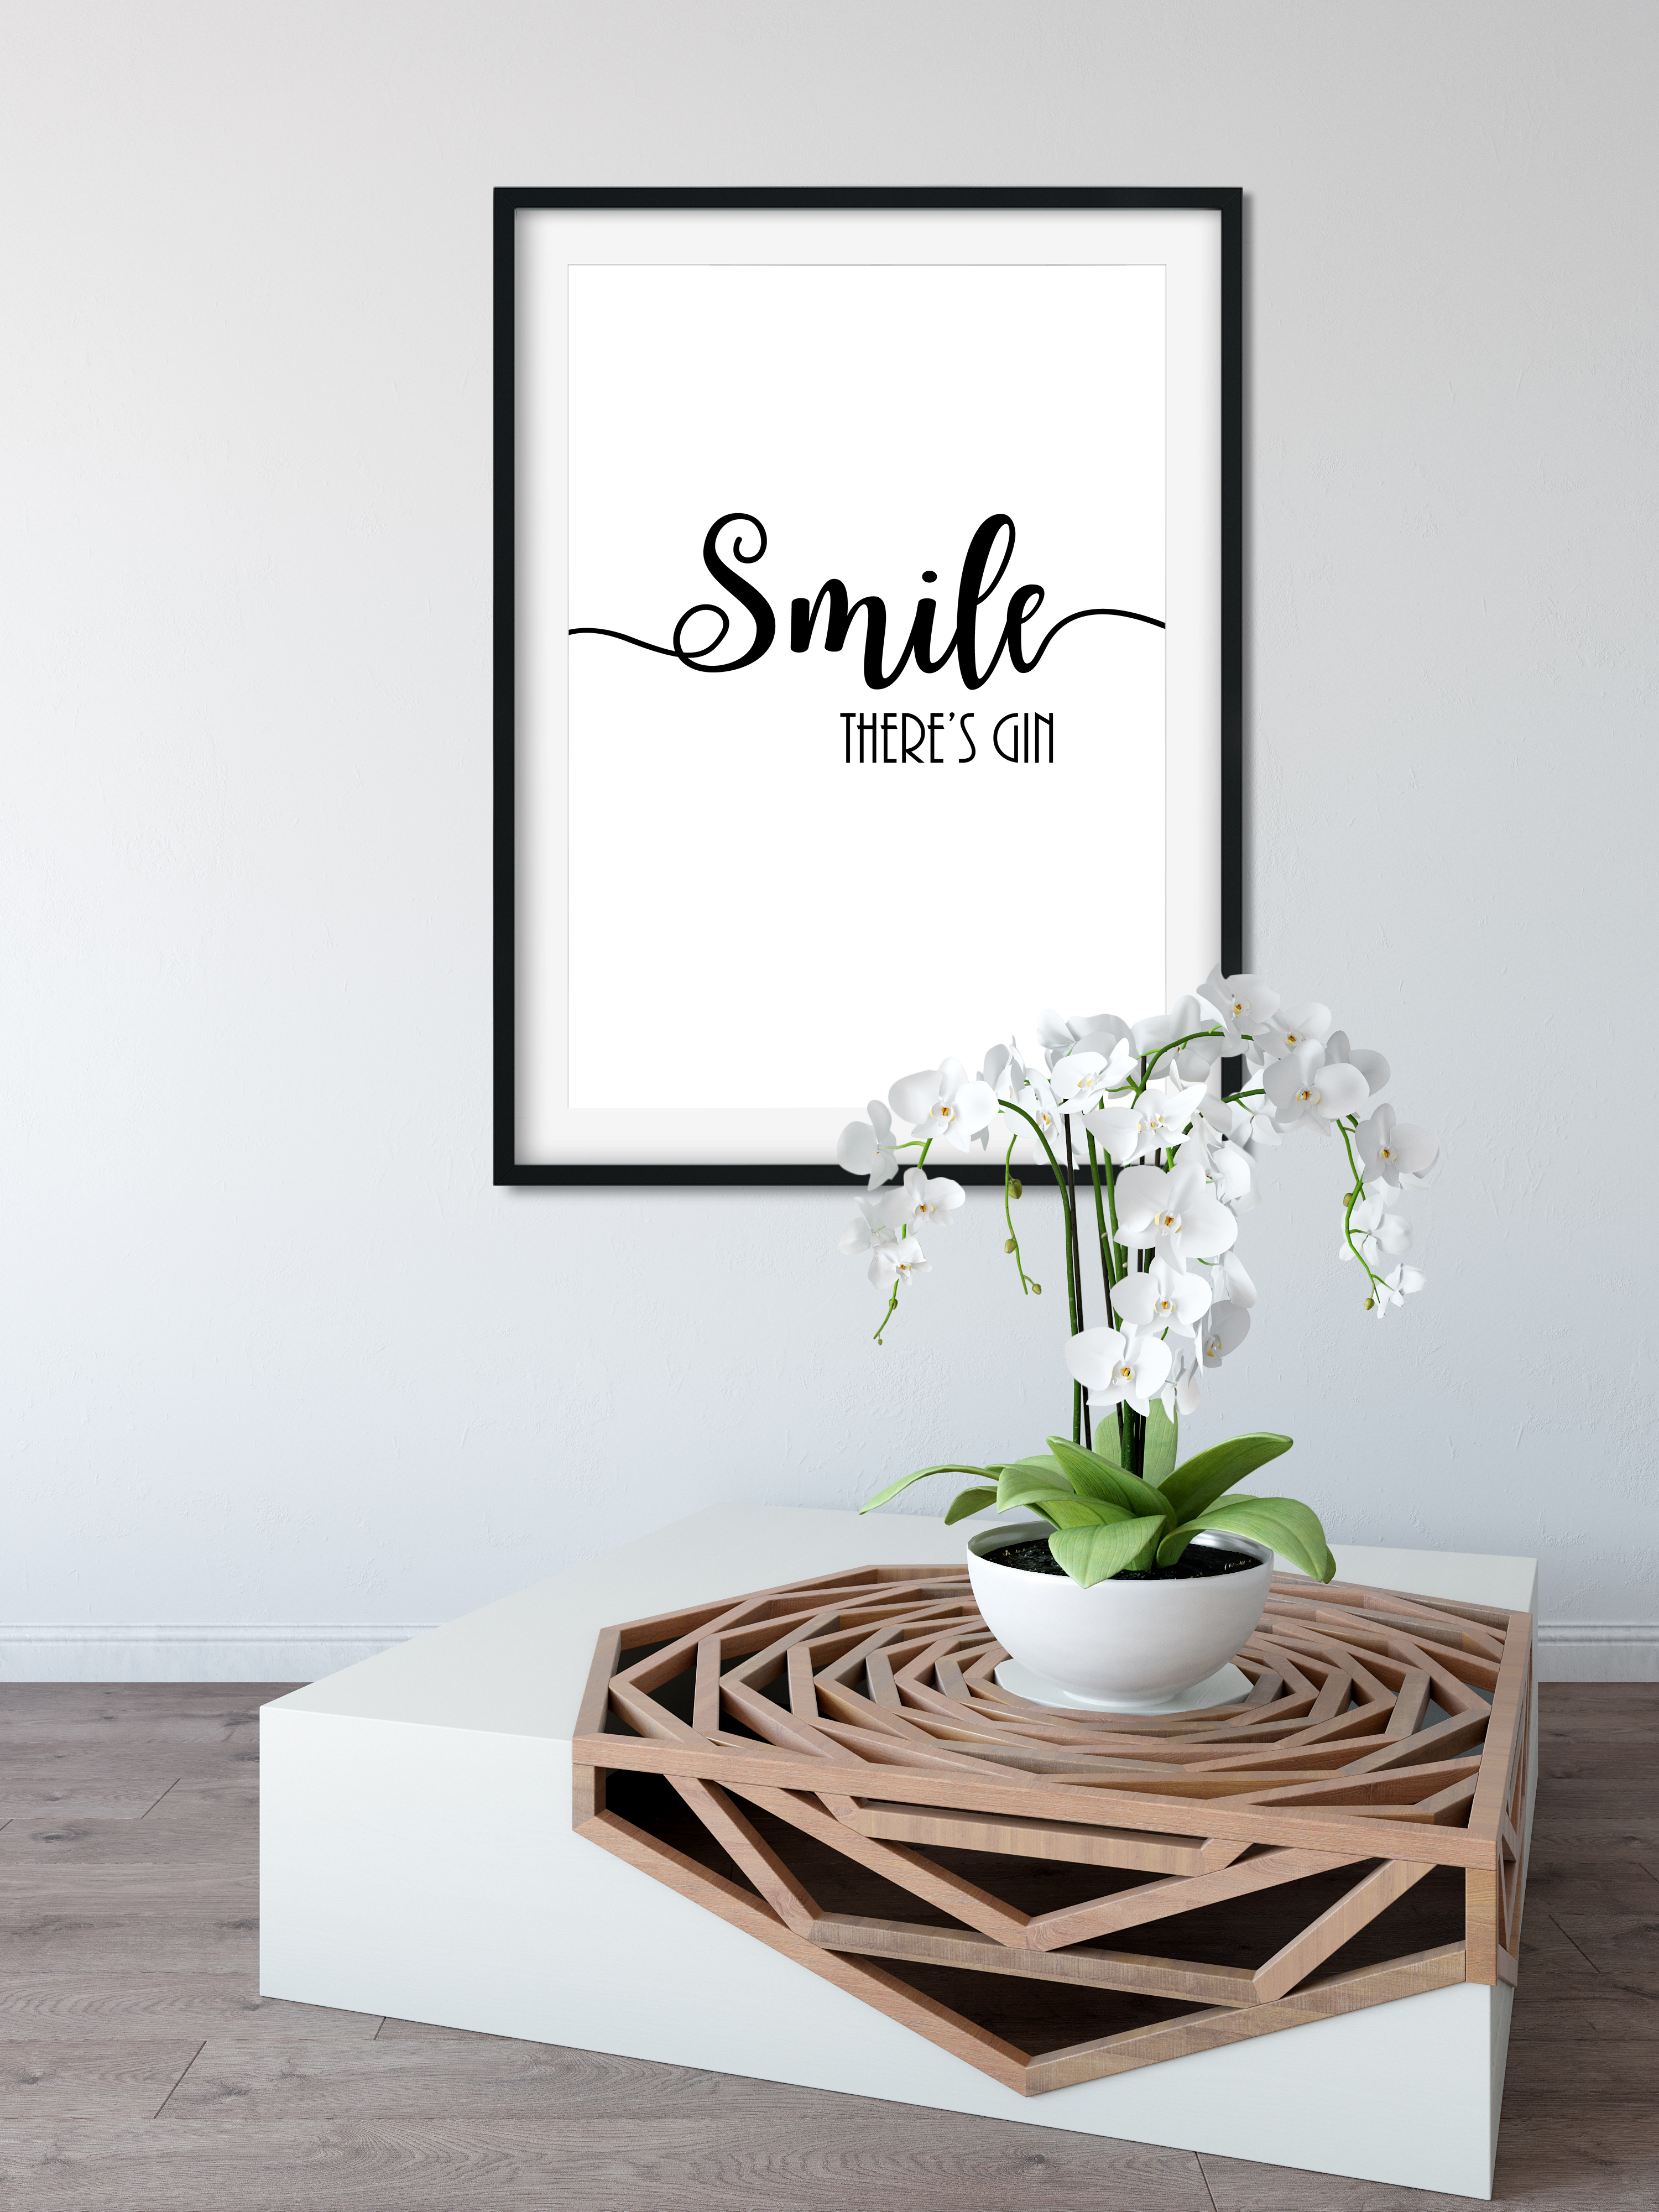 Details About Smile Theres Gin Funny Poster Wall Print A4 Or A3 Size Great  Gift Kitchen Art